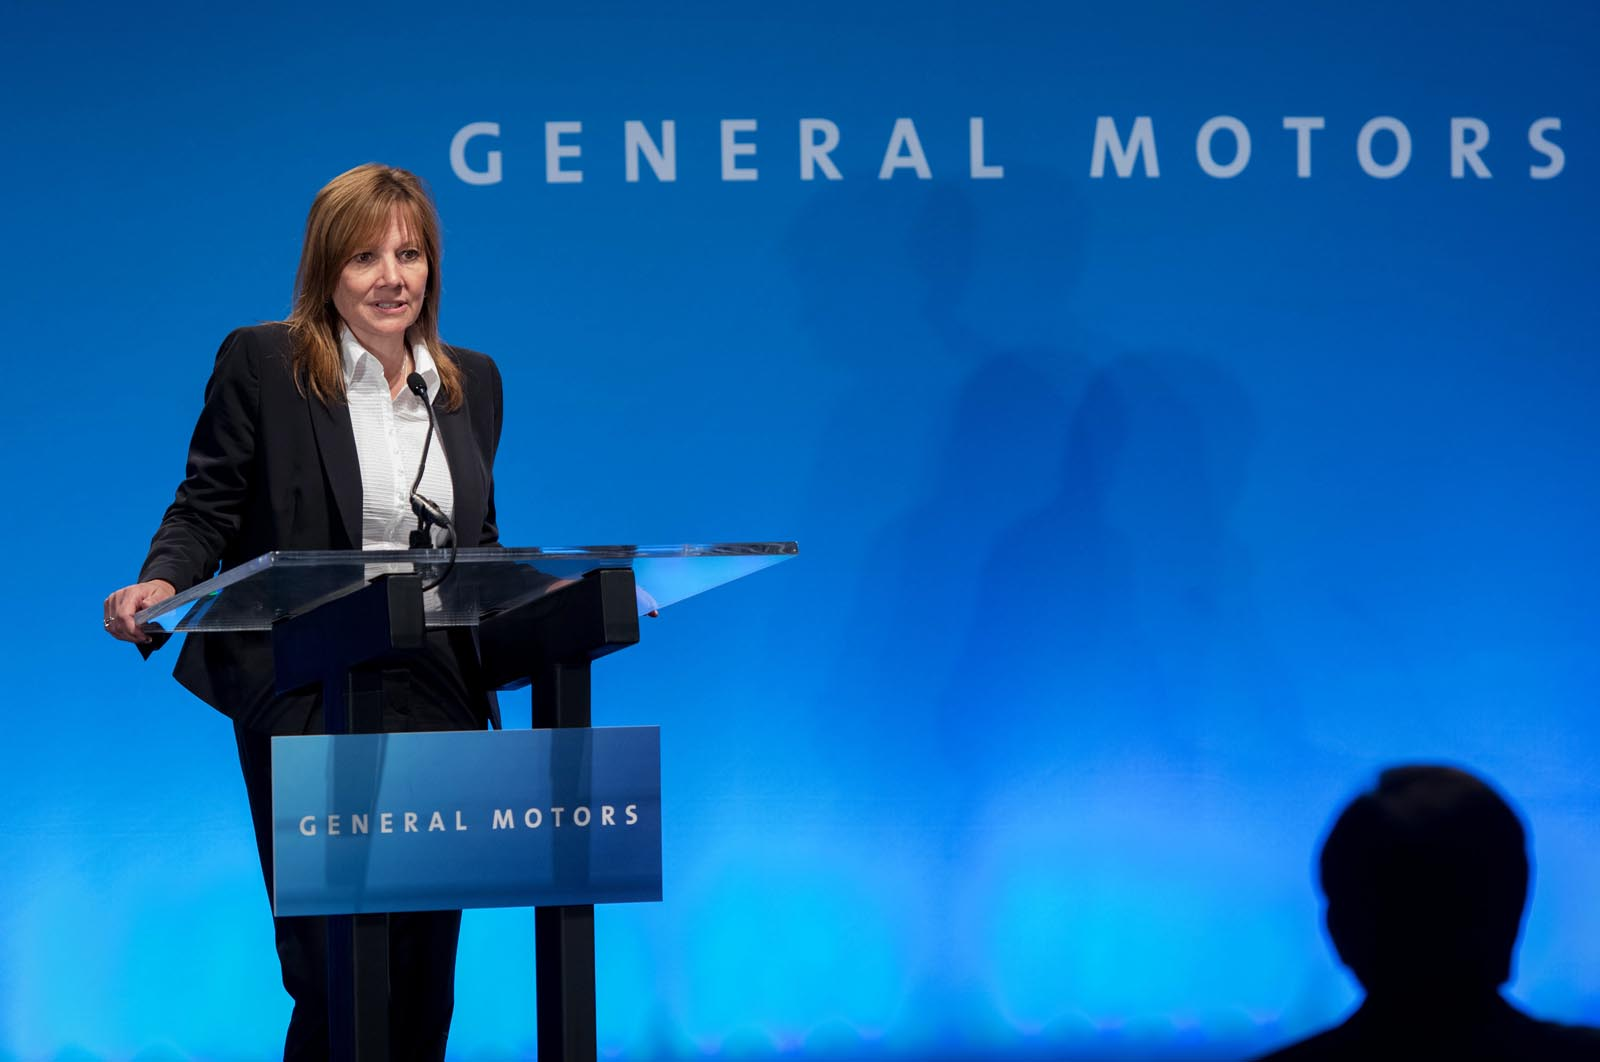 Photo of Ποια ήταν η αμοιβή της Mary Barra, της CEO της General Motors;